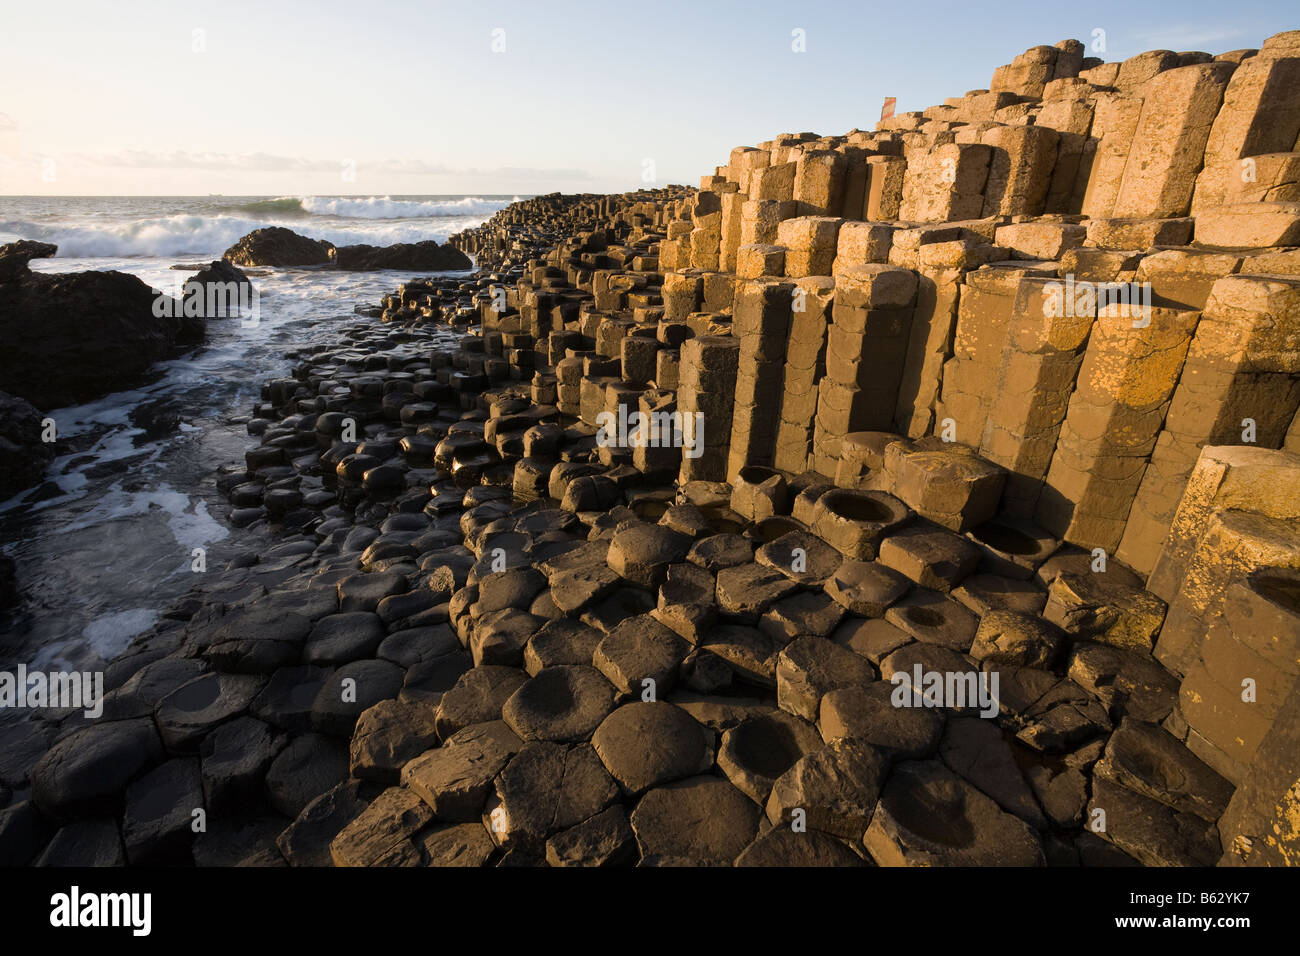 Glowing Causeway: The giant's causeway s unique hexagonally shaped rock columns are a major tourist draw for - Stock Image